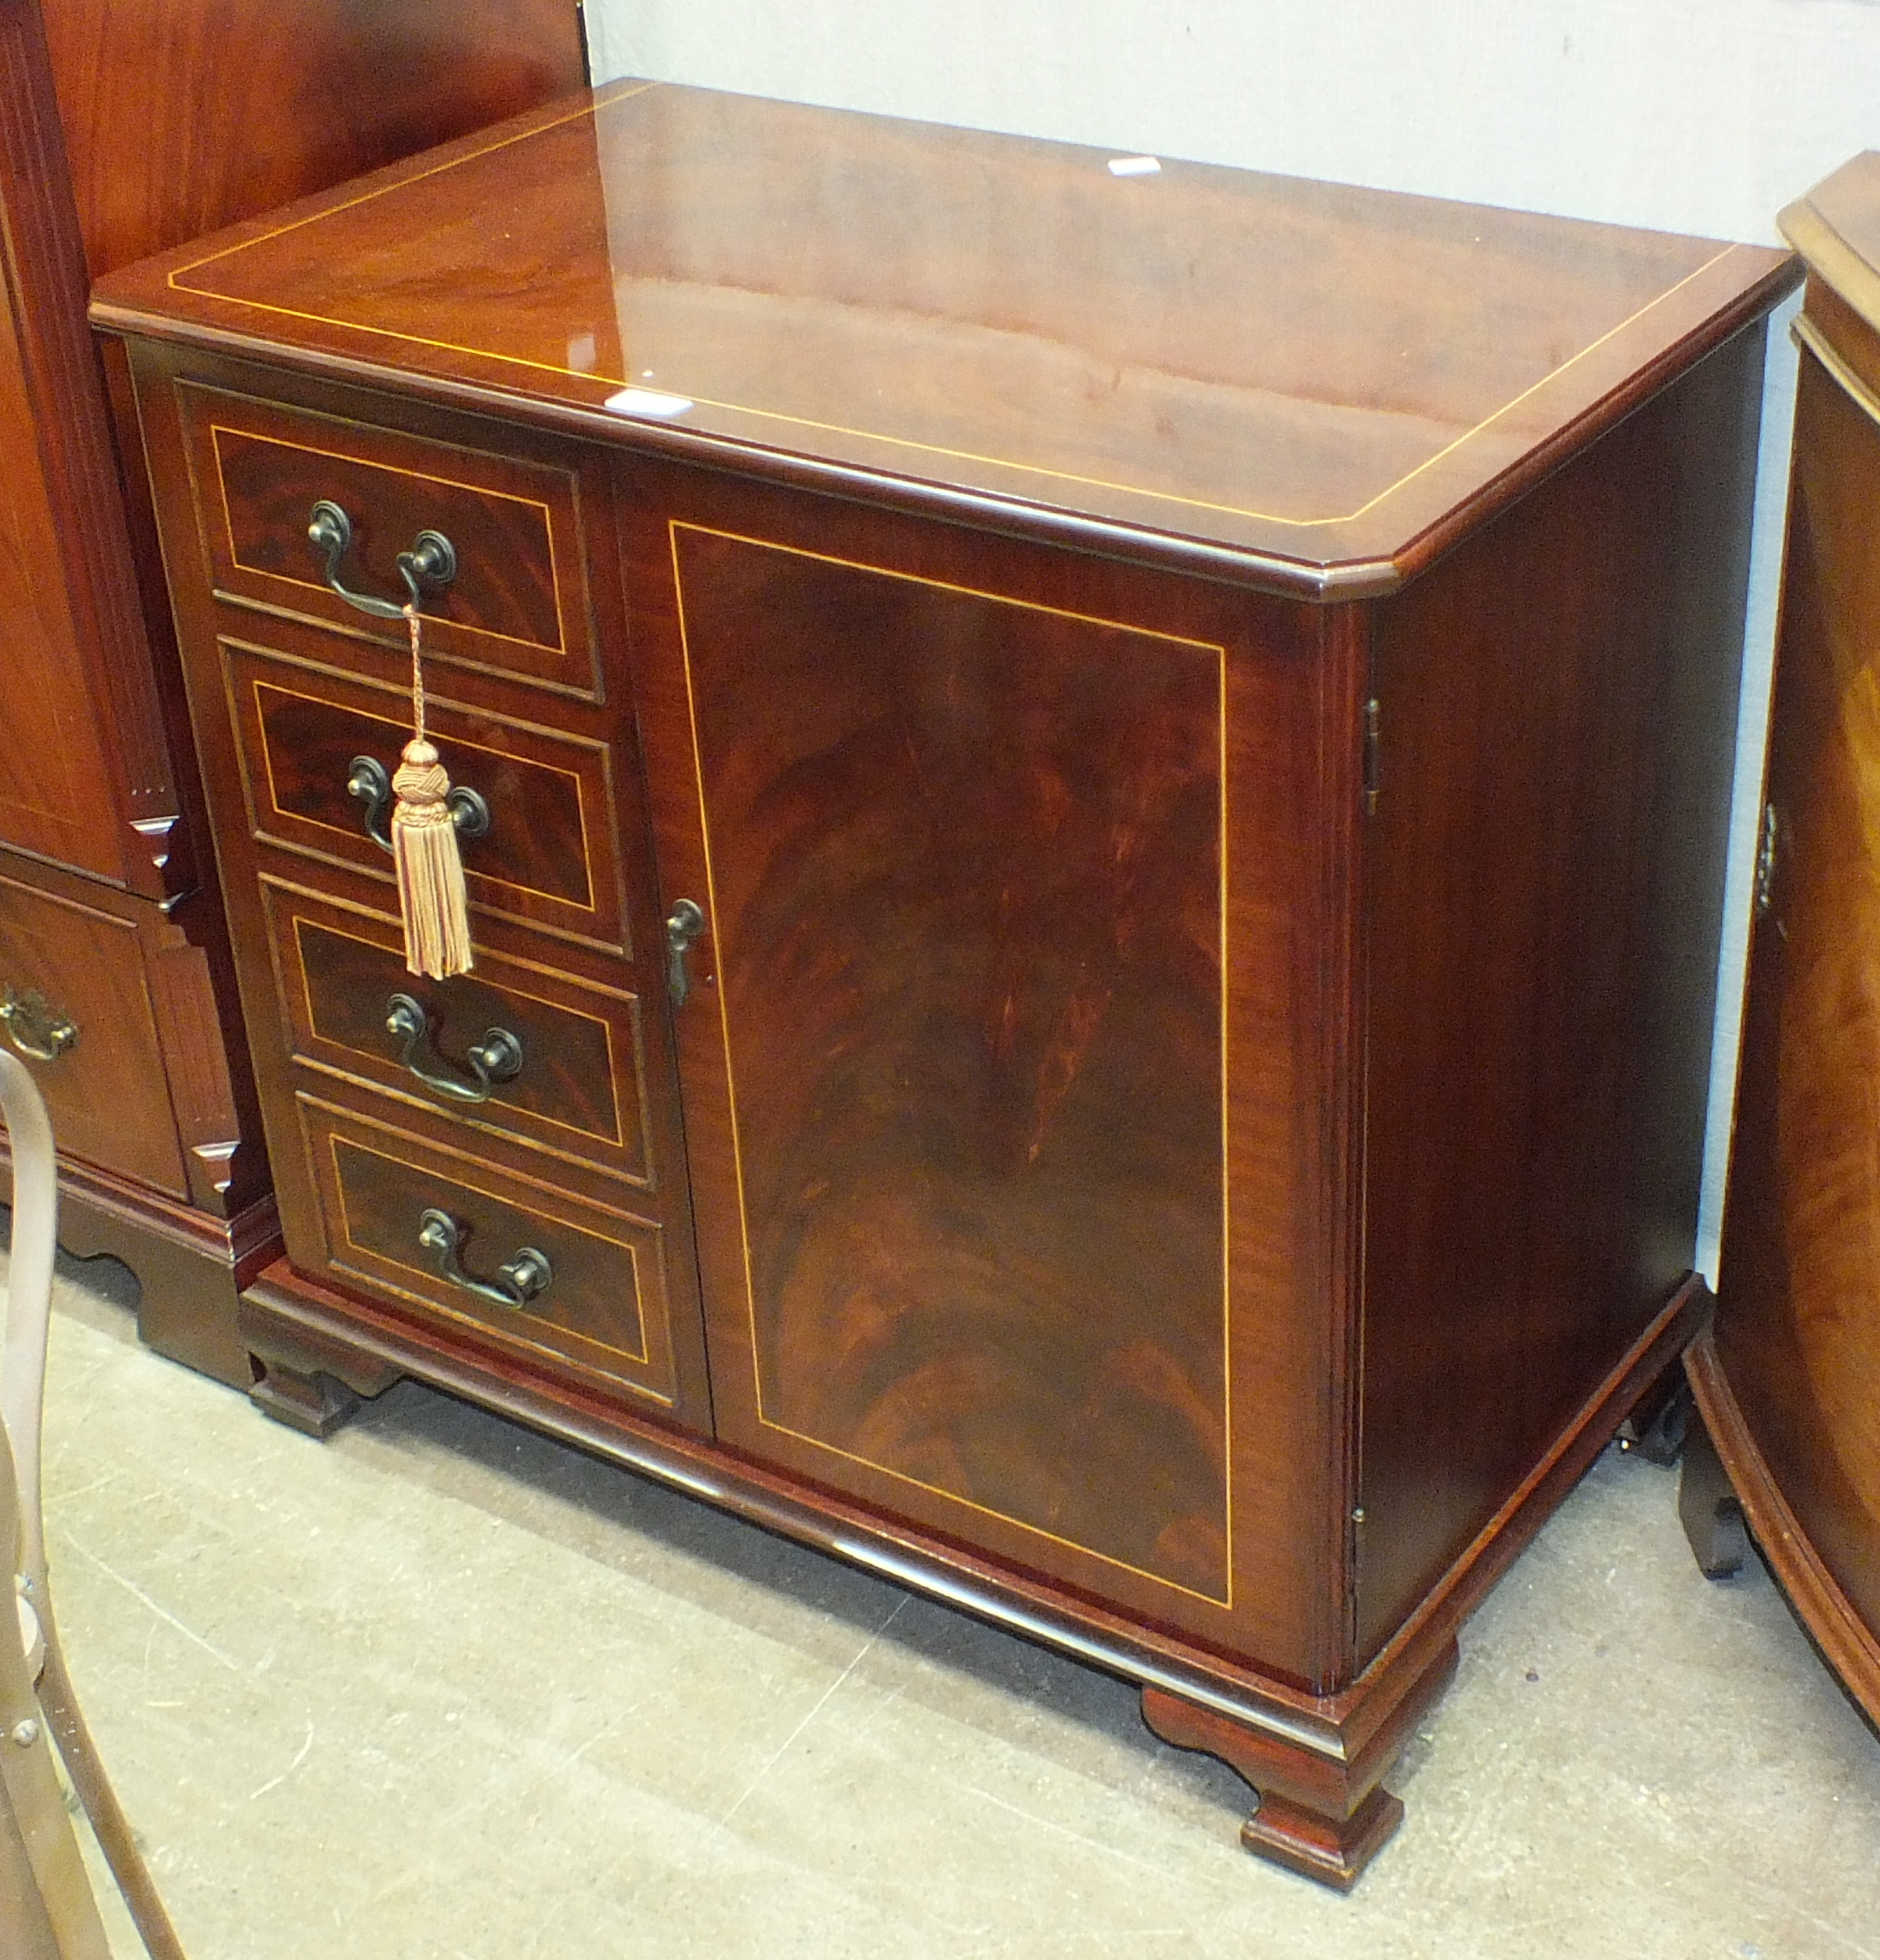 Lot 16 - A reproduction mahogany finish Hi-Fi cabinet and other reproduction furniture.